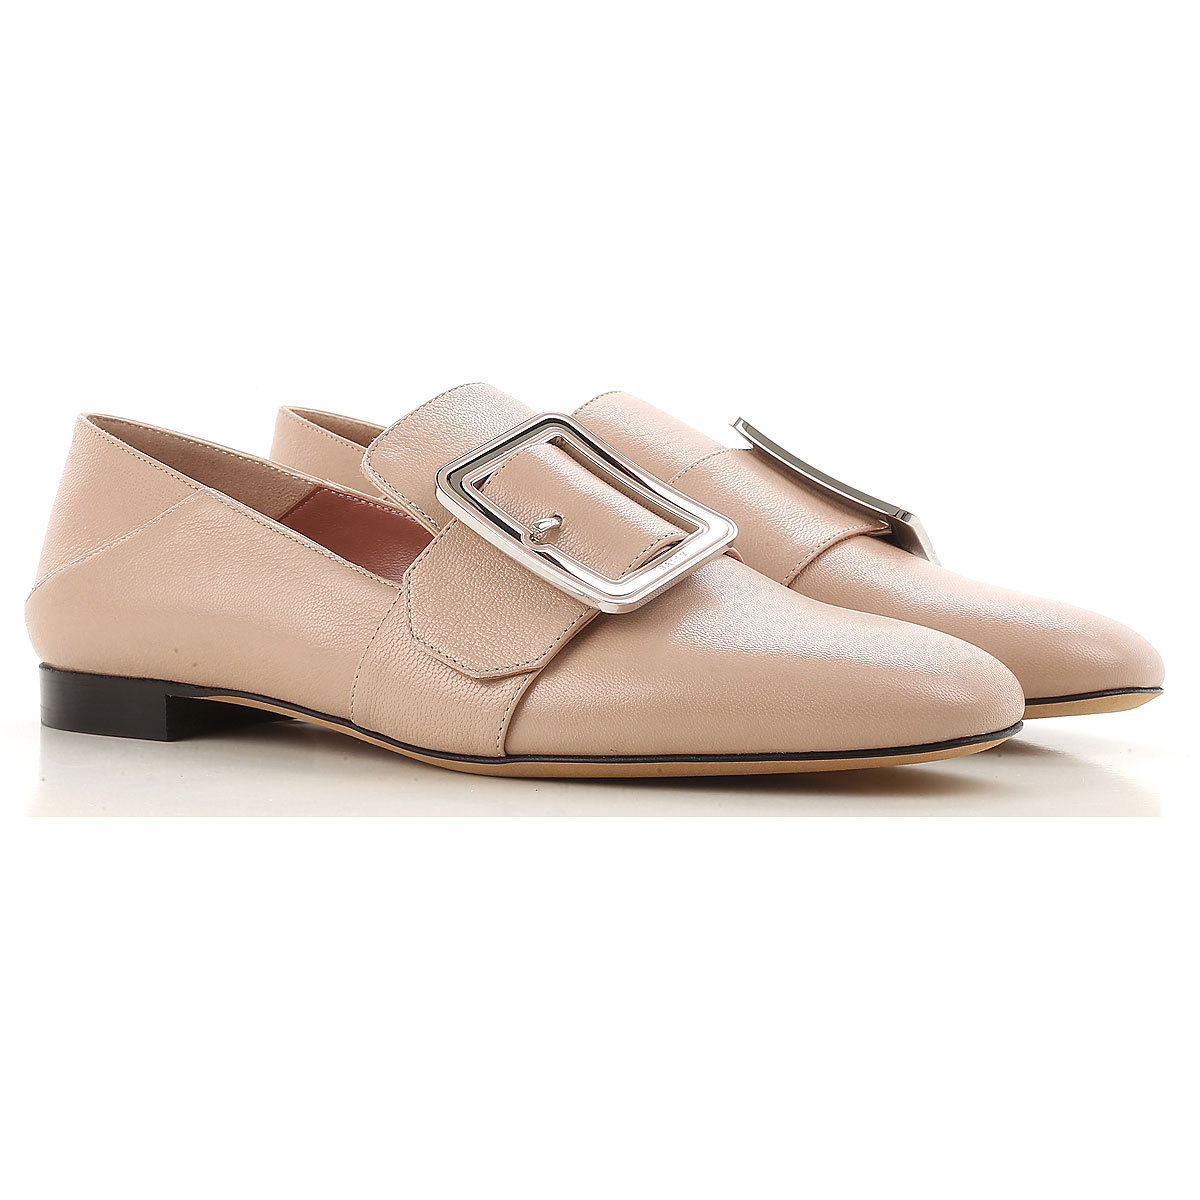 Image of Bally Loafers for Women, Nude, Leather, 2017, 8.5 9